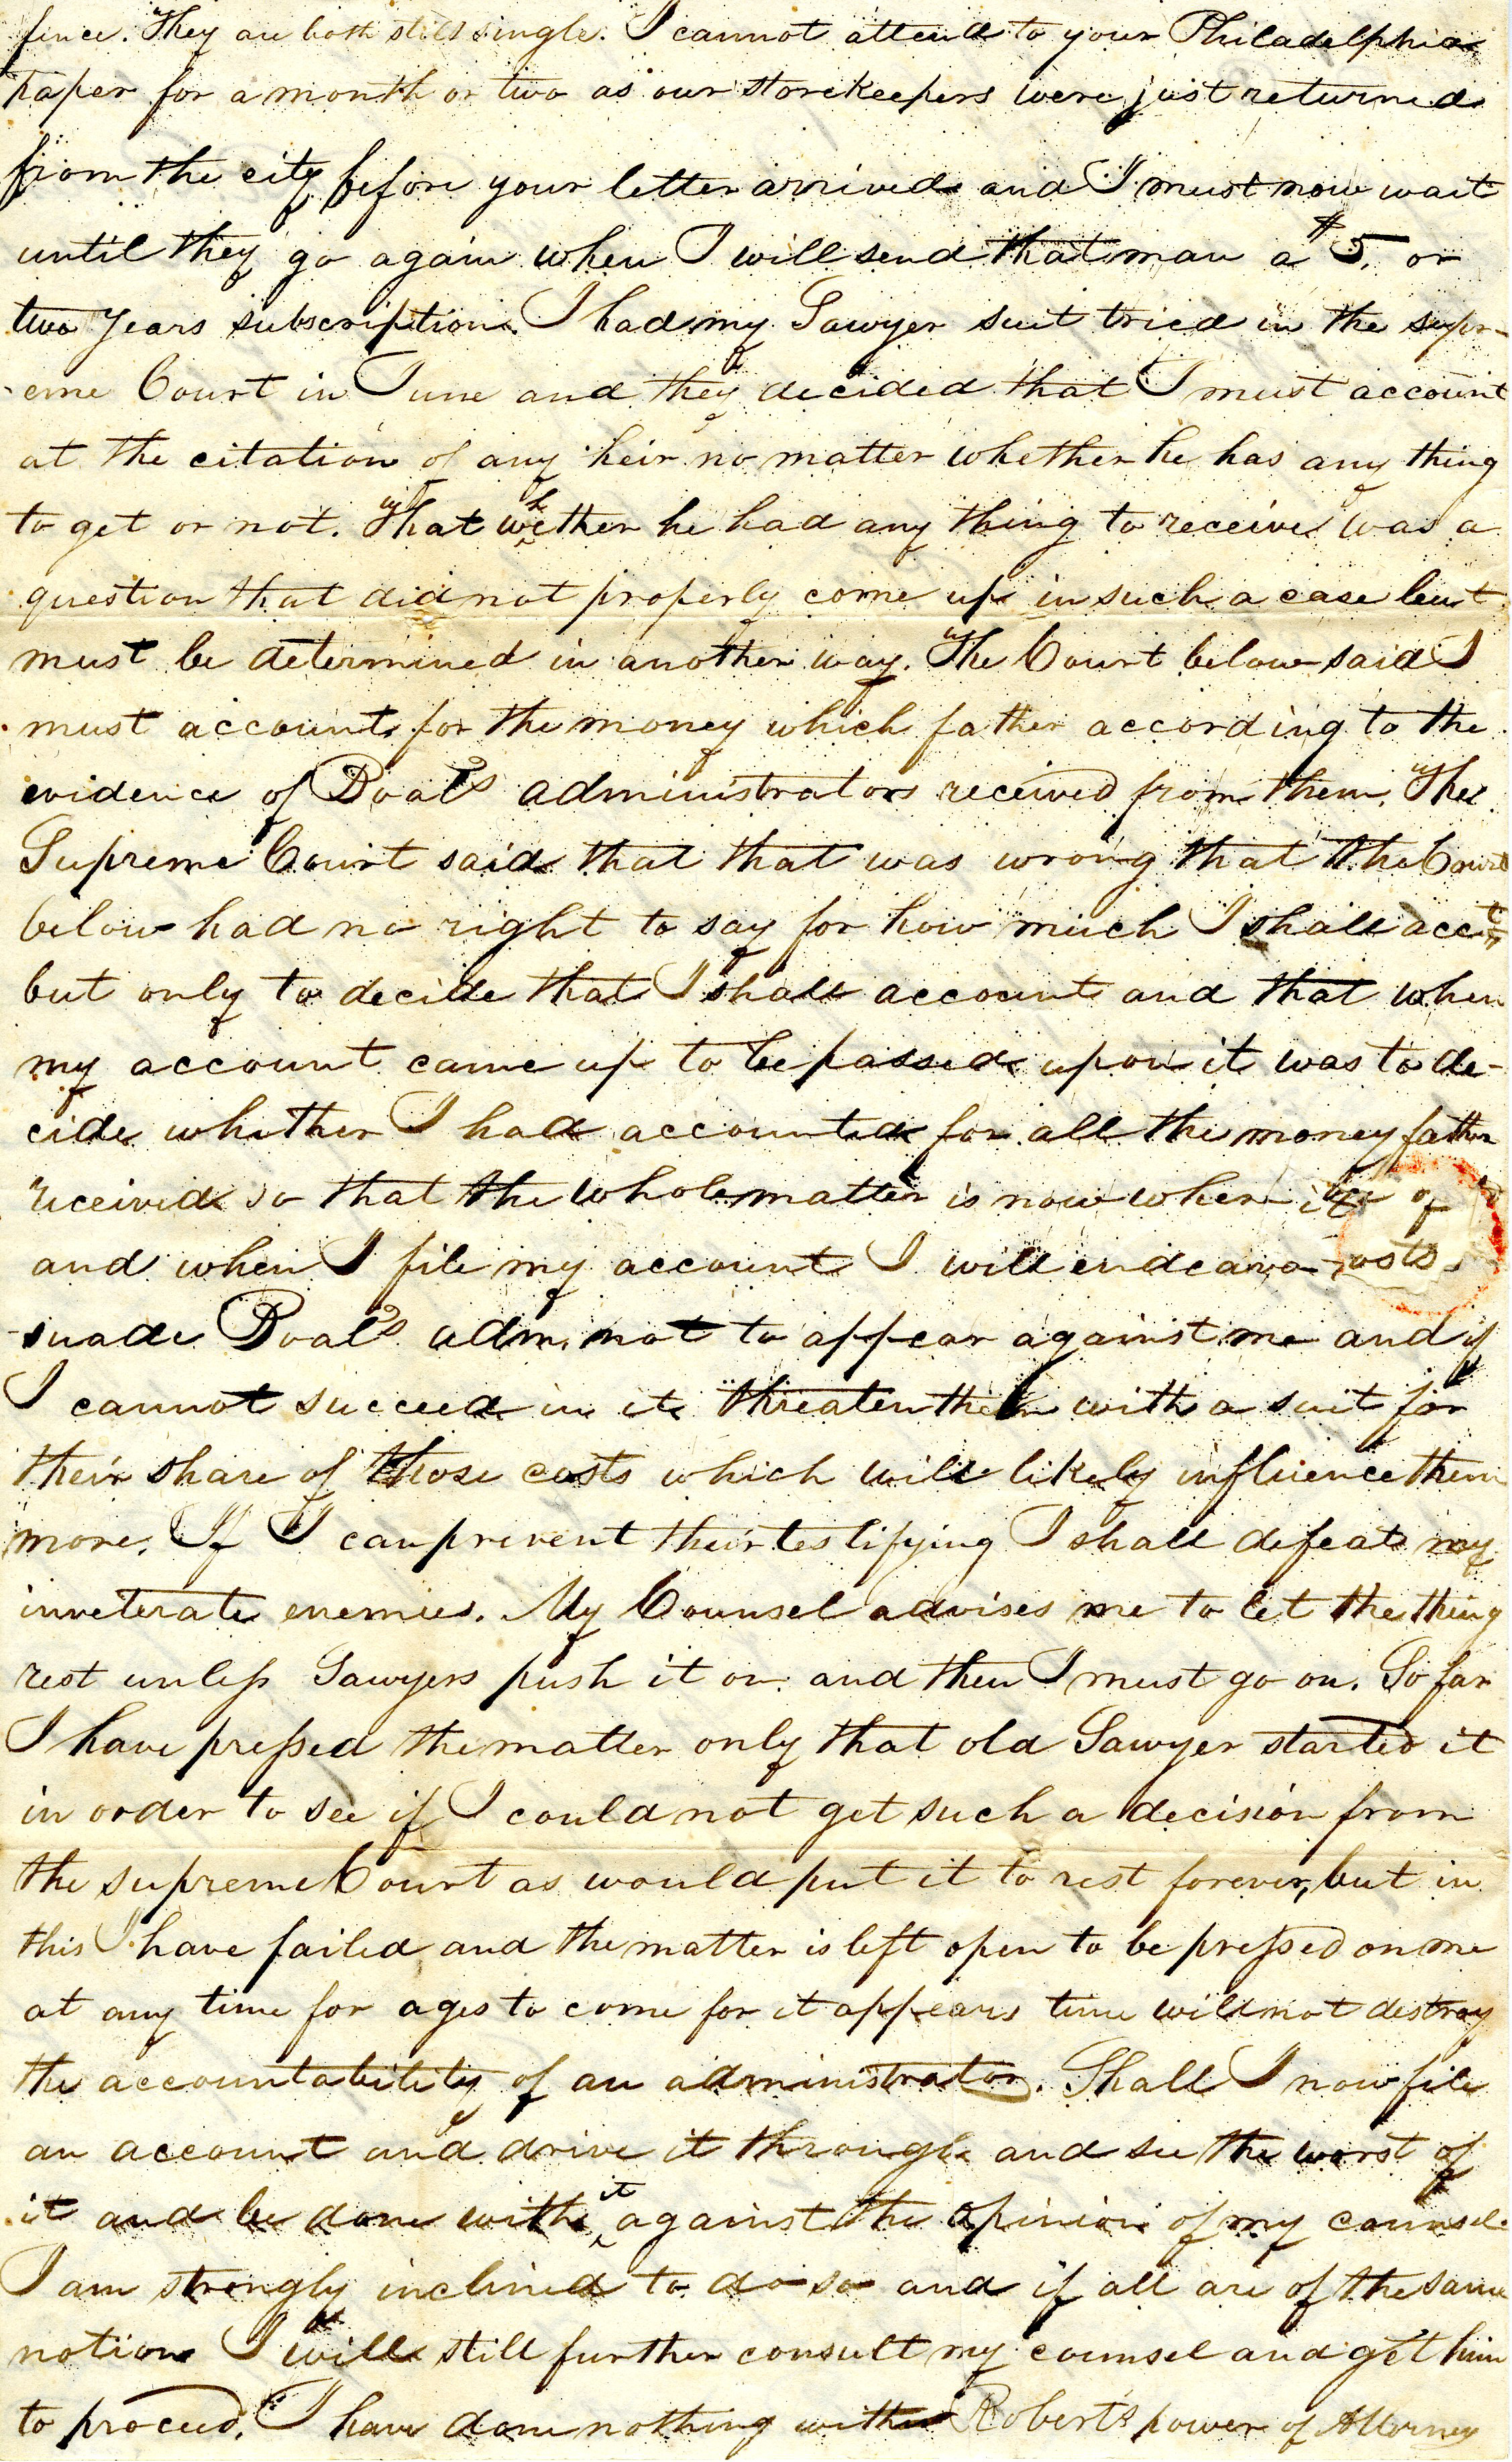 Letter From William Geddes to John Geddes, July 27, 1838 image